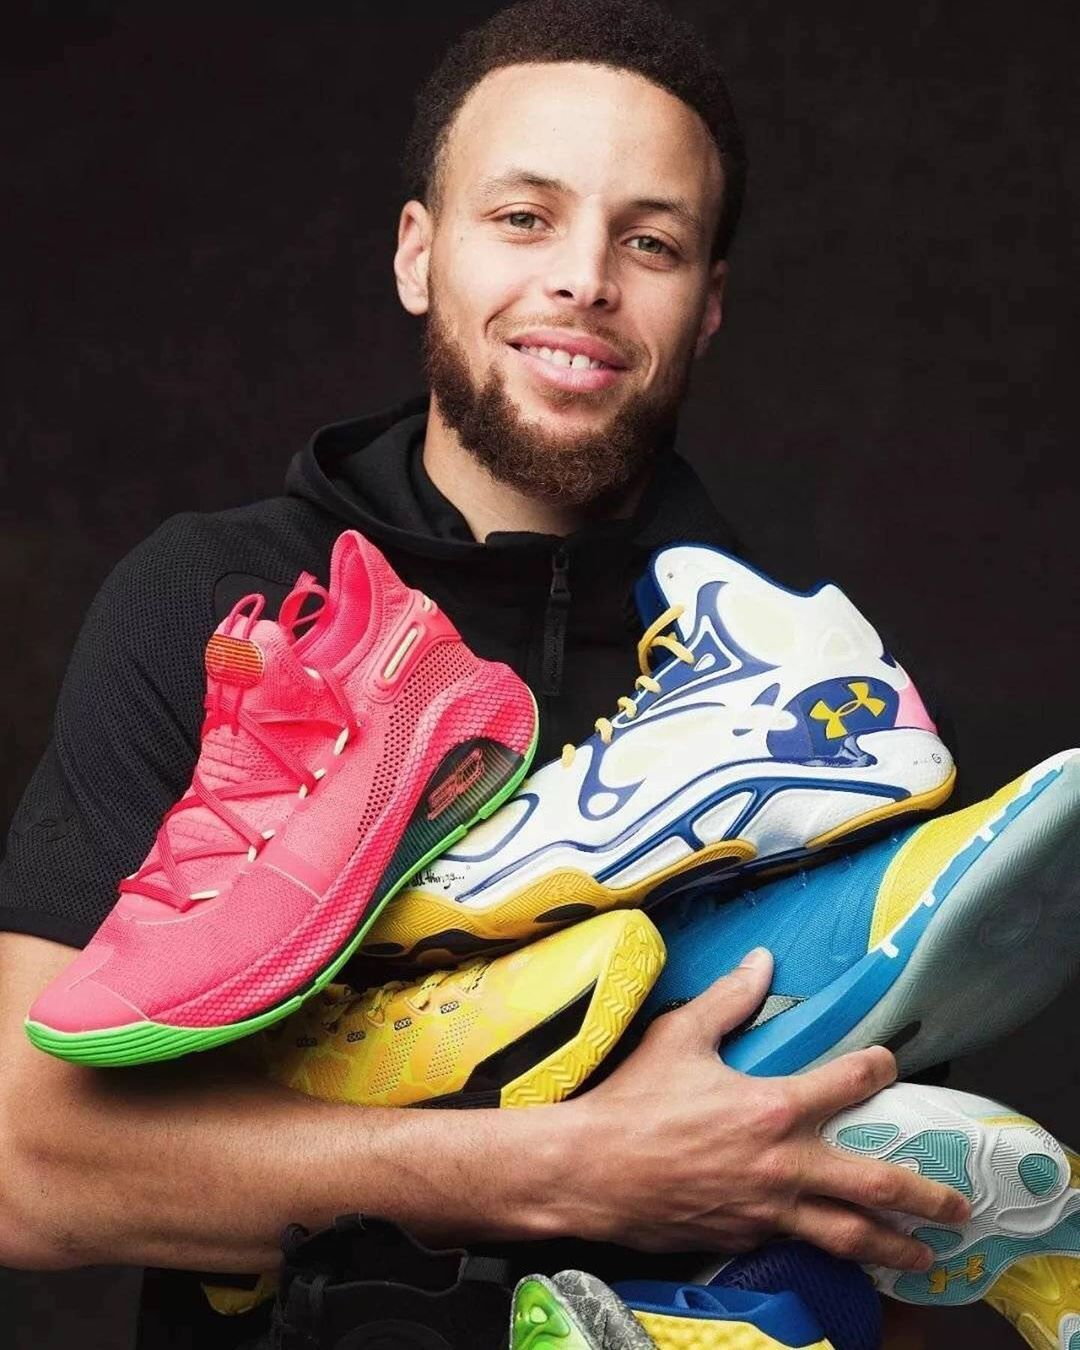 Image May Contain One Or More People And Beard Stephen Curry